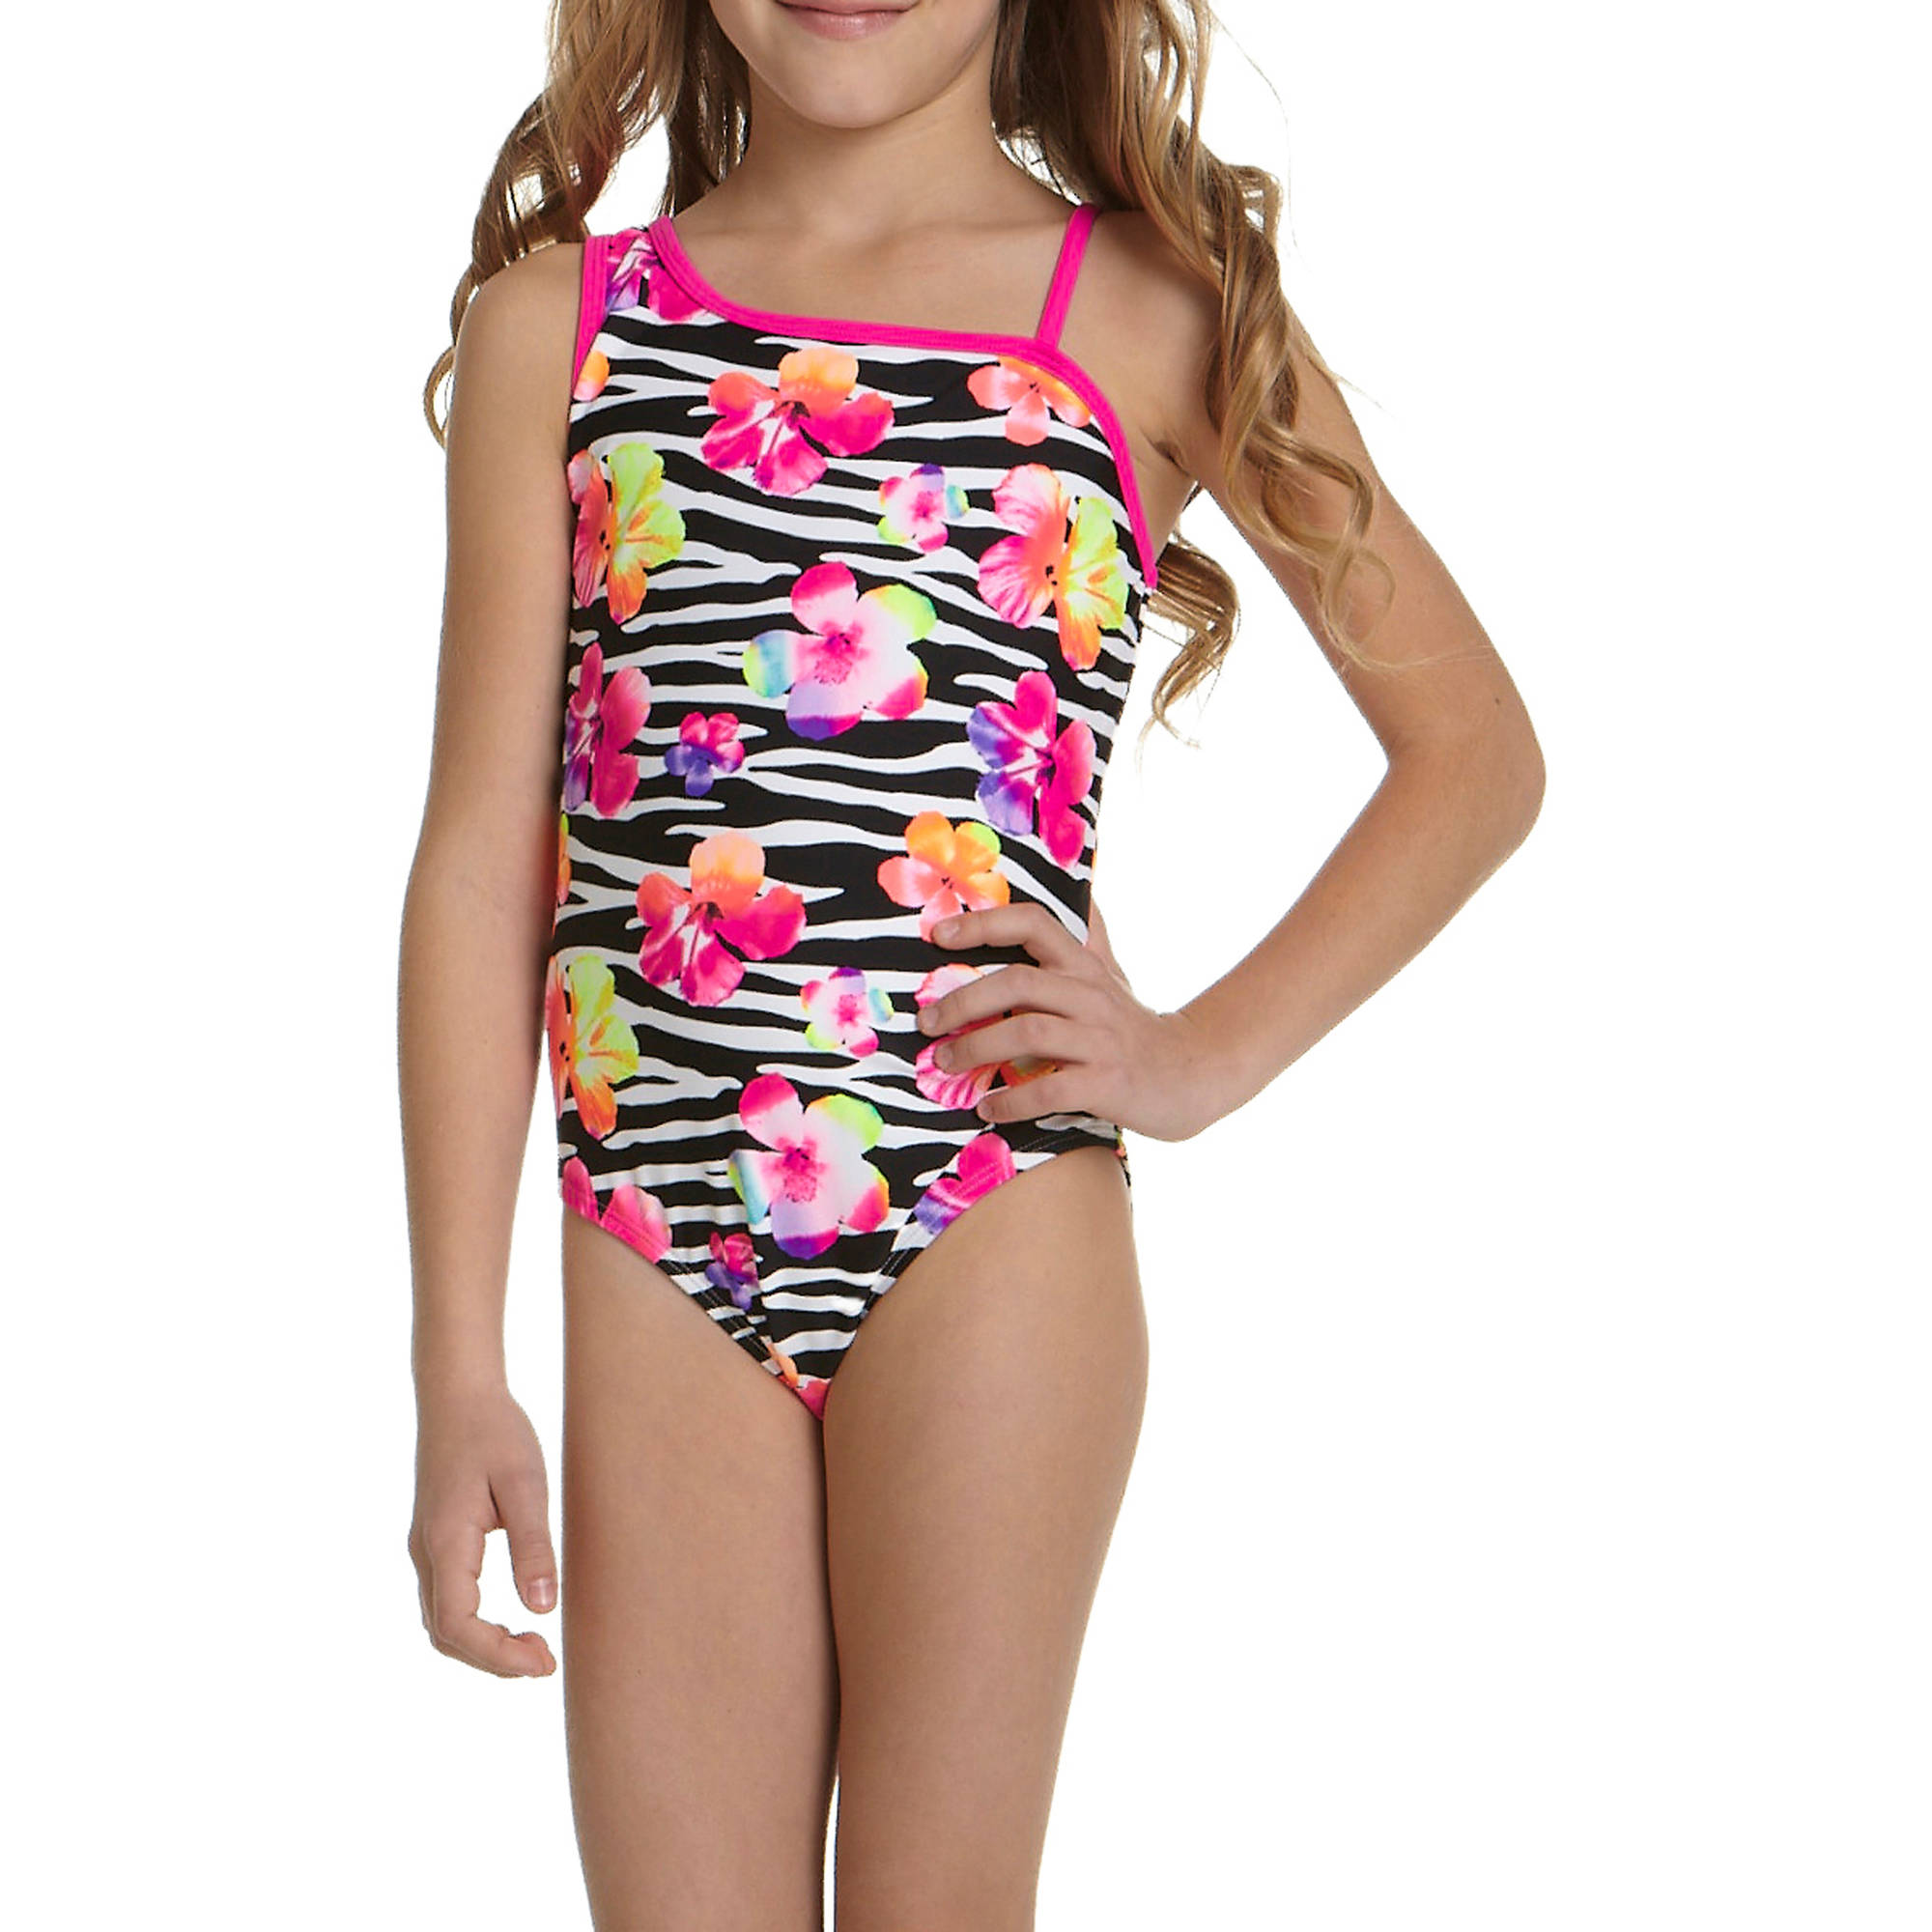 OP Girls' Zebra Punch One Piece Swimsuit